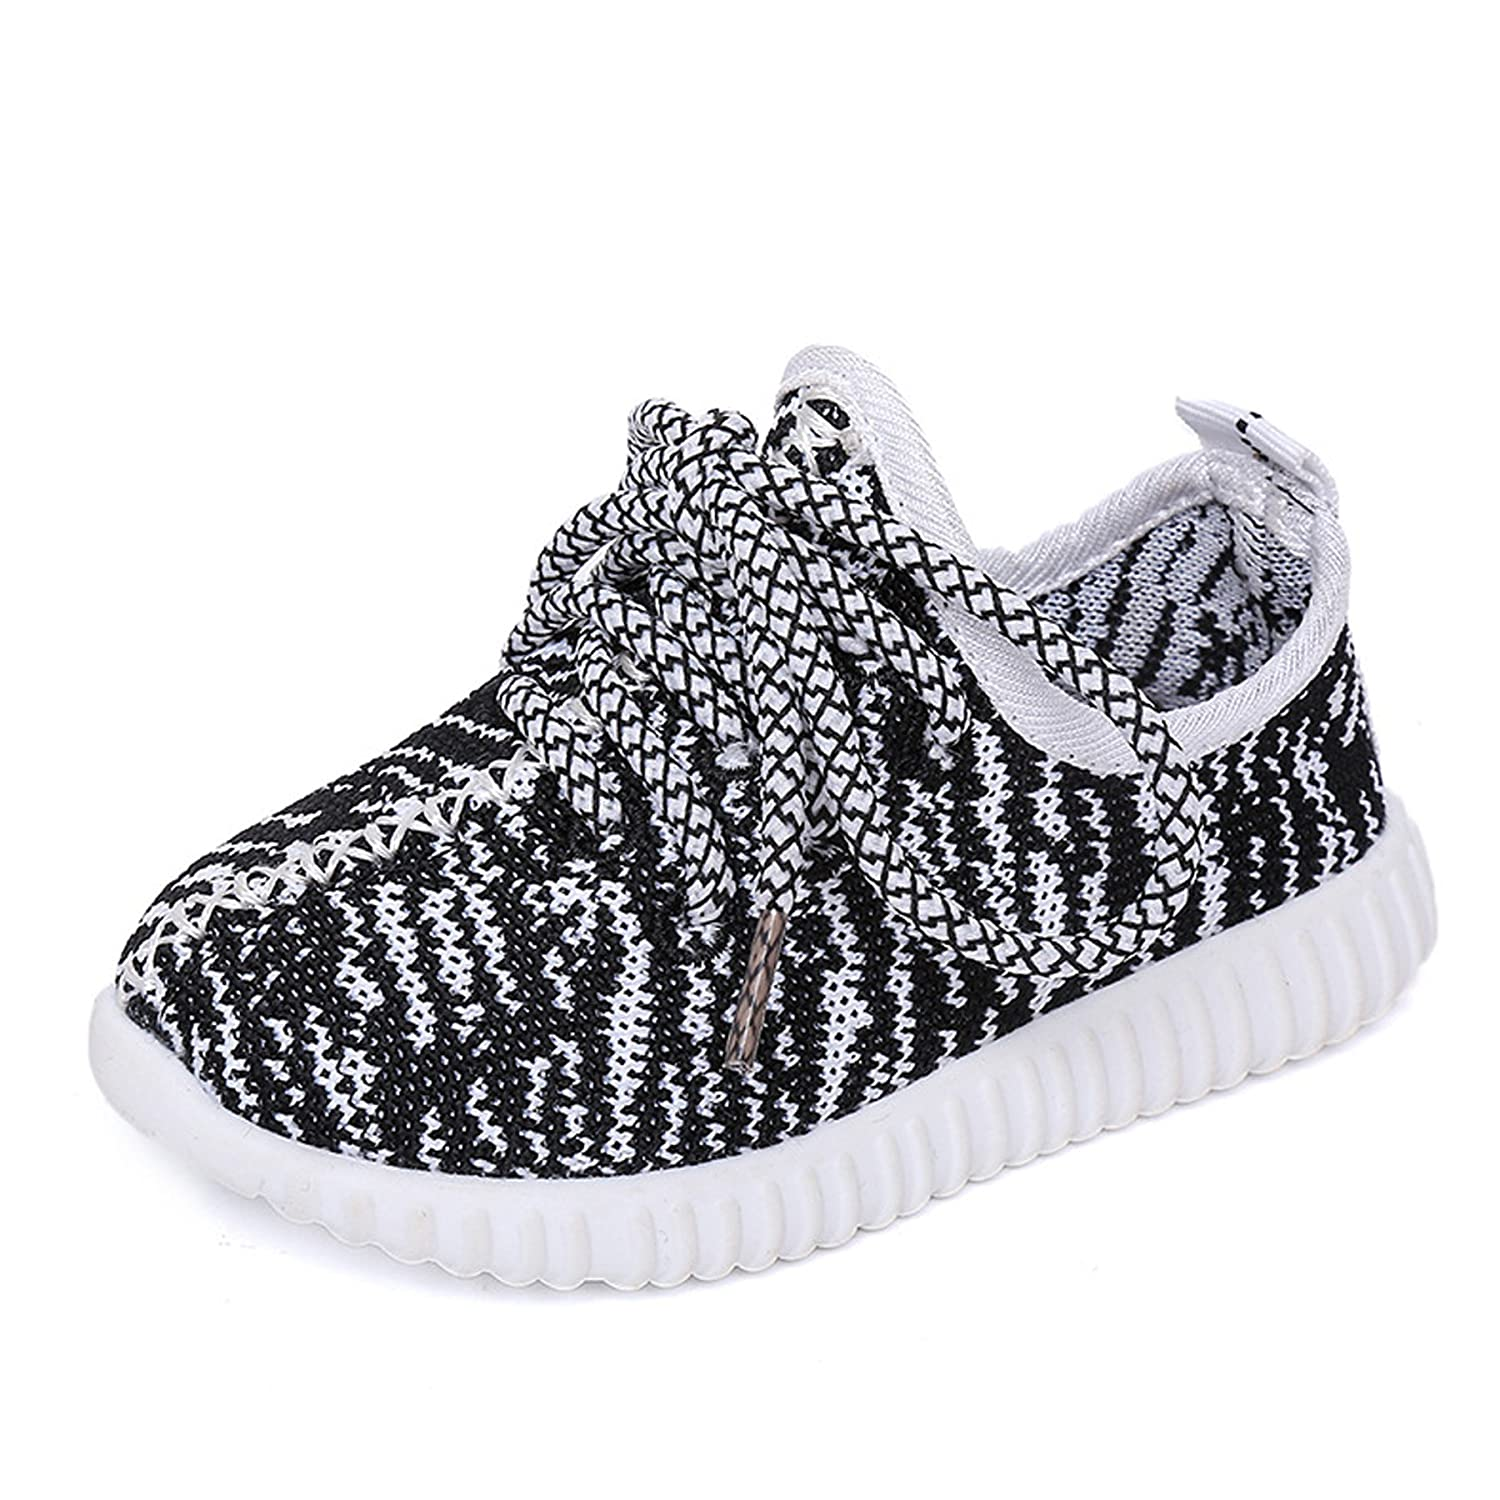 Nepretty Girls Breathable Running Shoes Boys Knit Lightweight Athletic Sneakers Walking